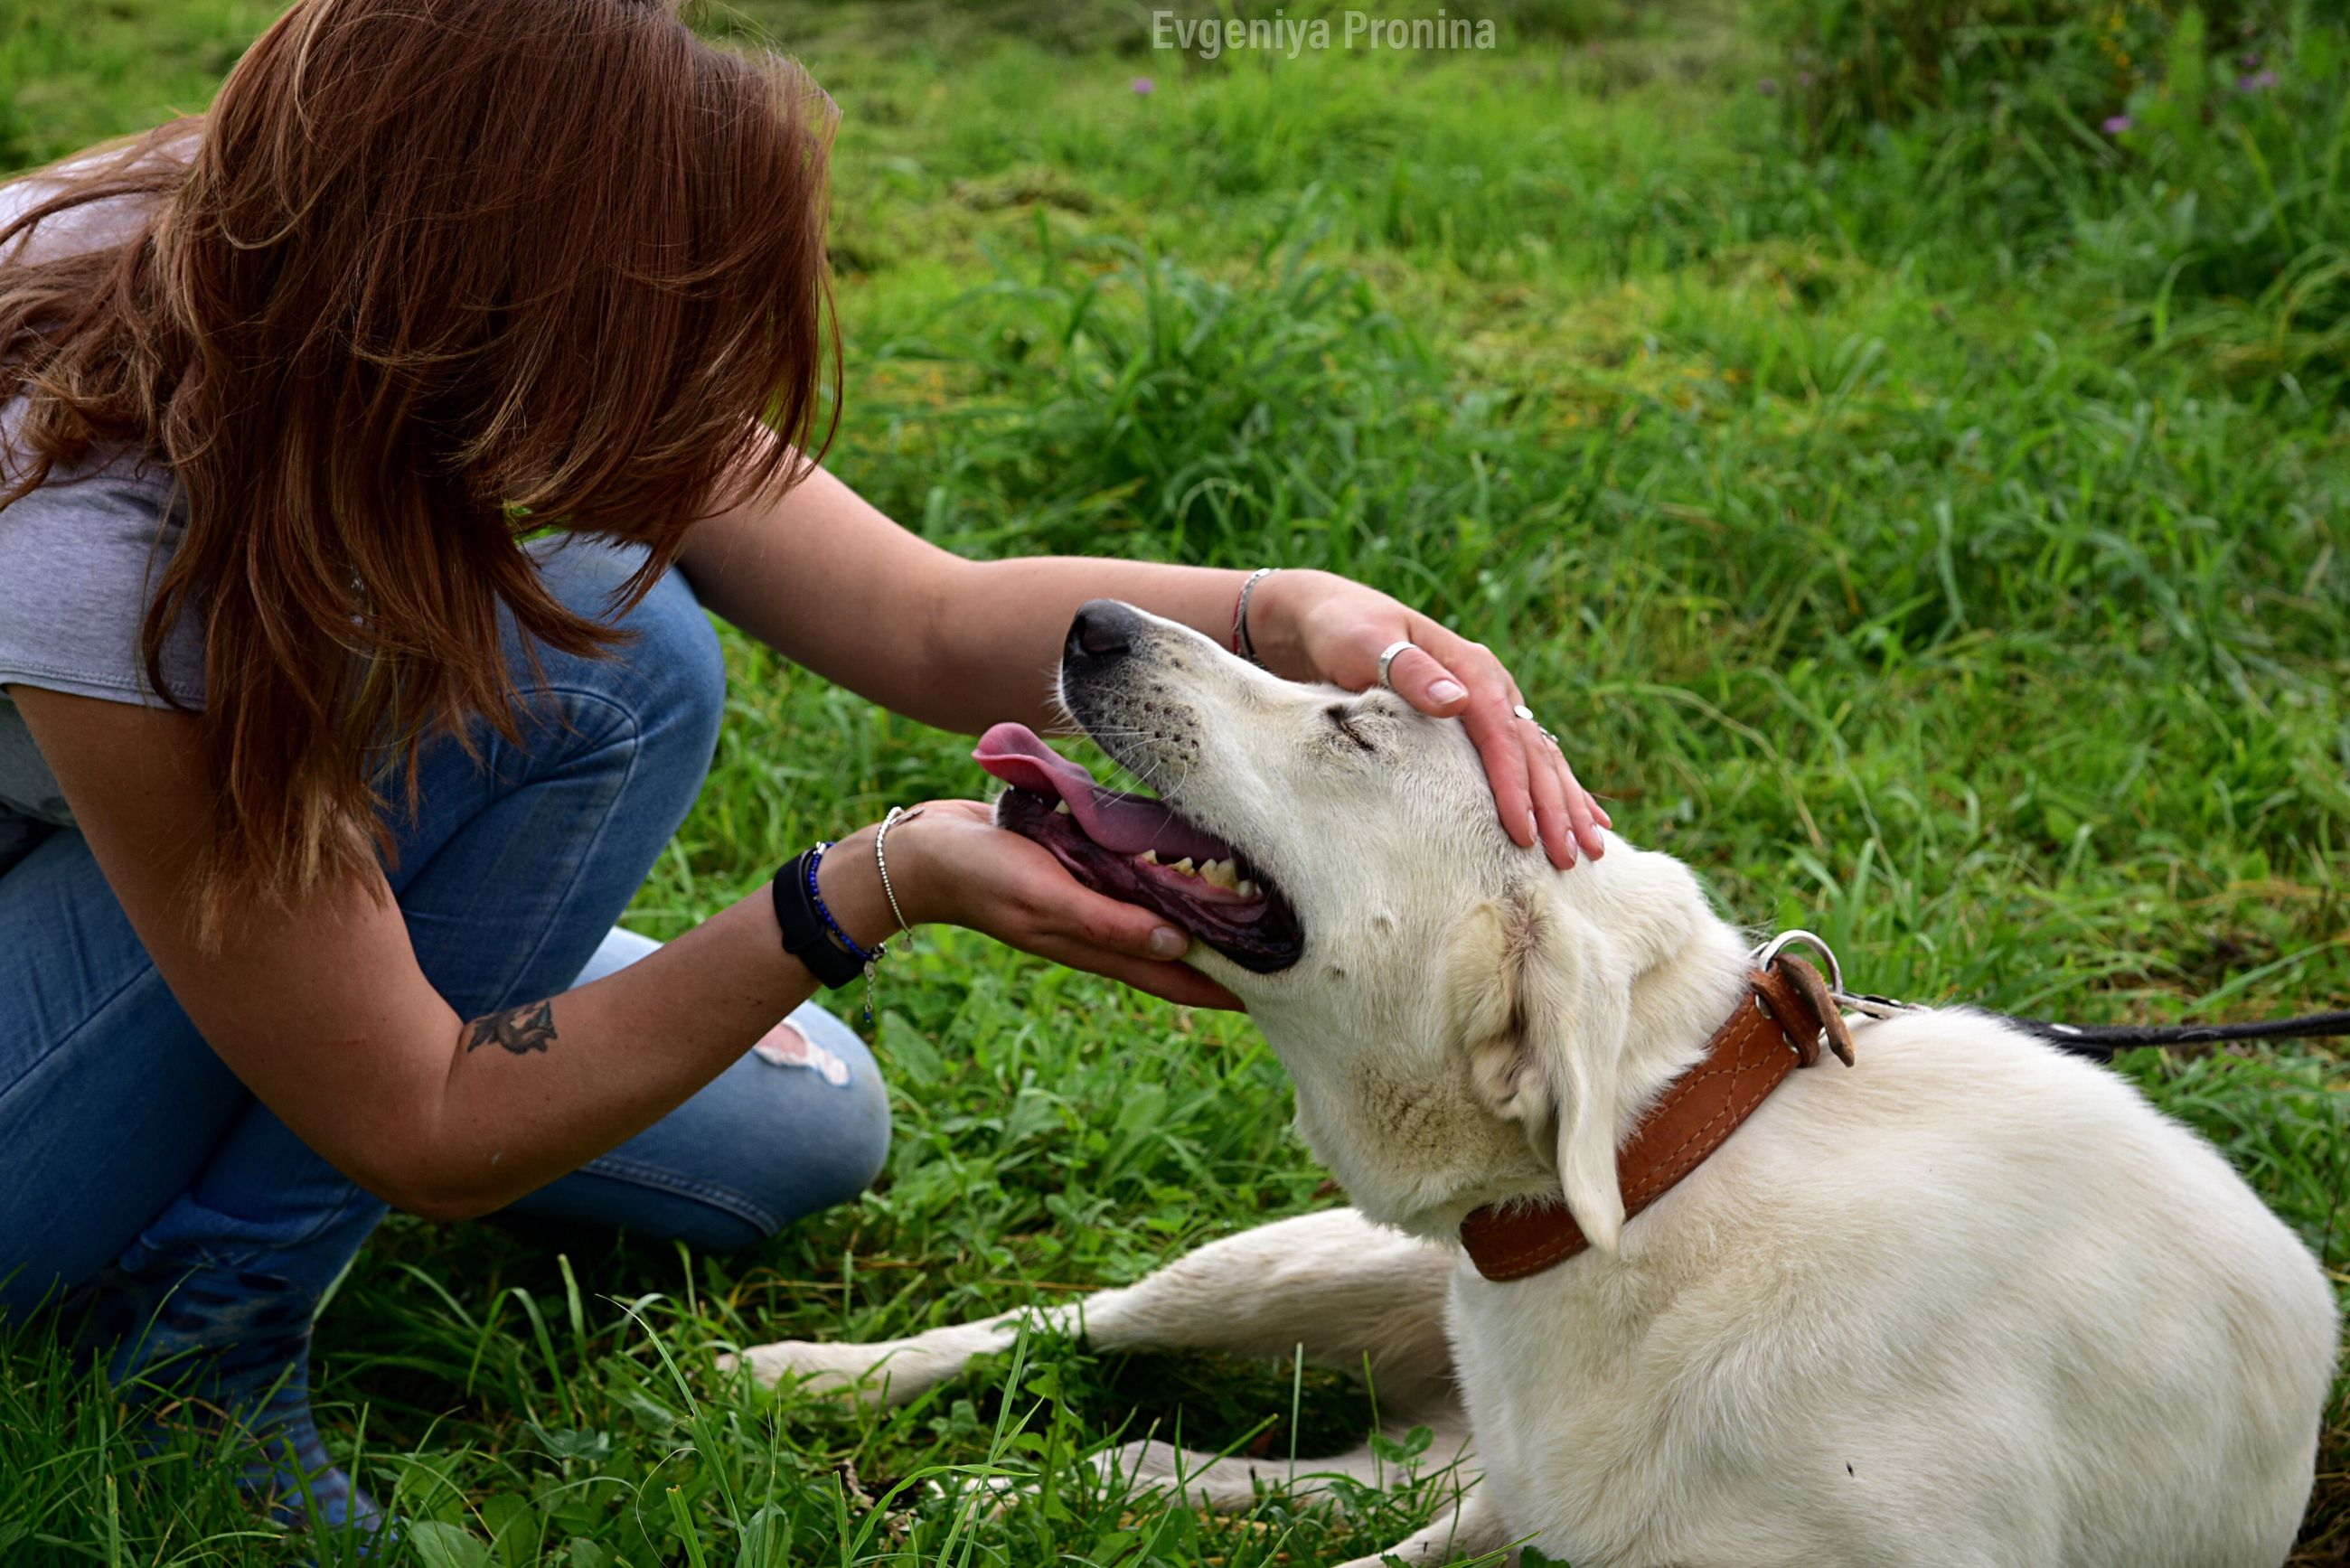 domestic, pets, domestic animals, mammal, real people, one animal, canine, dog, grass, field, one person, vertebrate, leisure activity, women, adult, land, plant, pet owner, outdoors, hairstyle, care